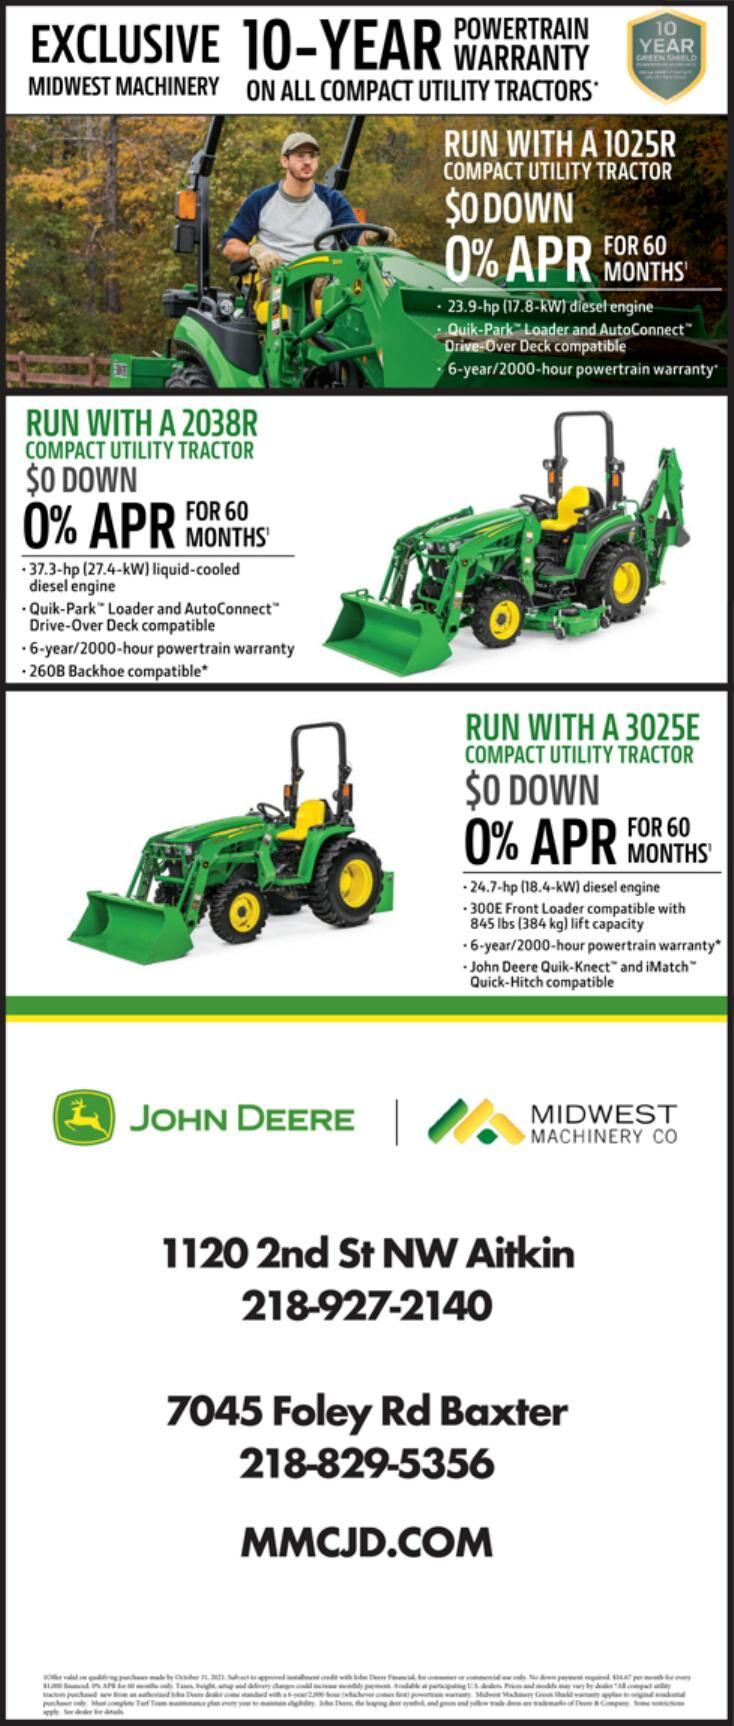 Midwest Machinery 7-3-21